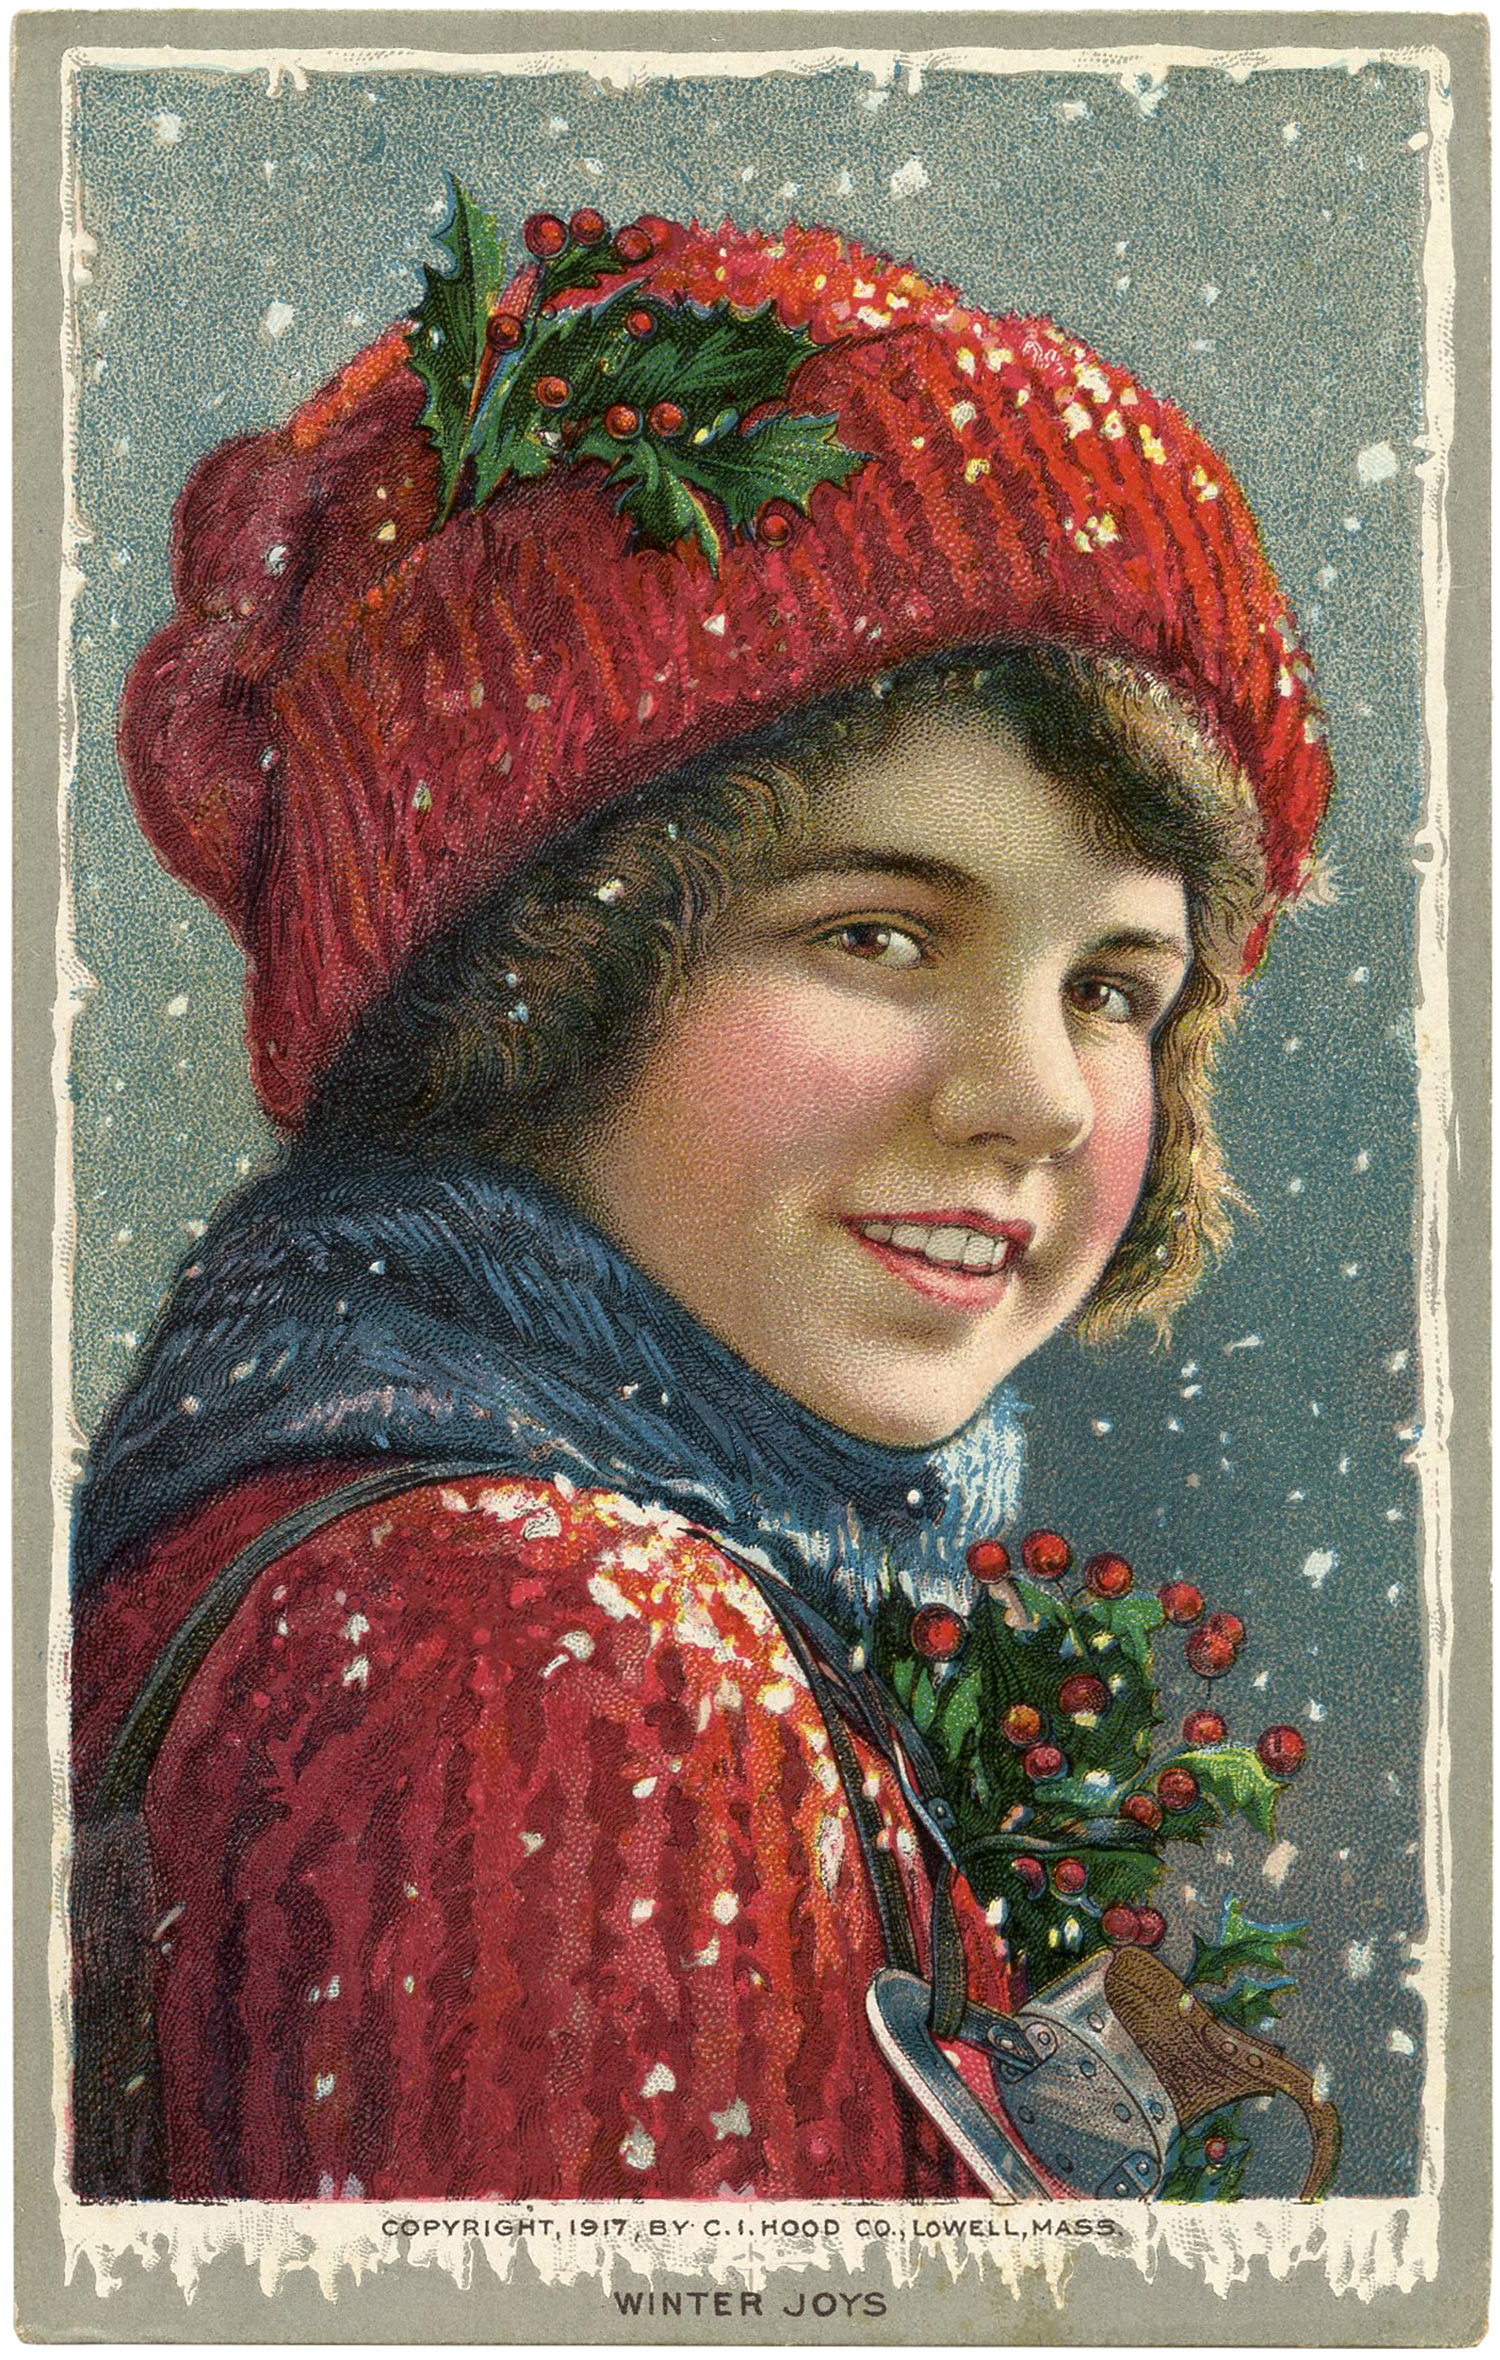 1000 Images About Retro Vintage On Pinterest: Vintage Christmas Image